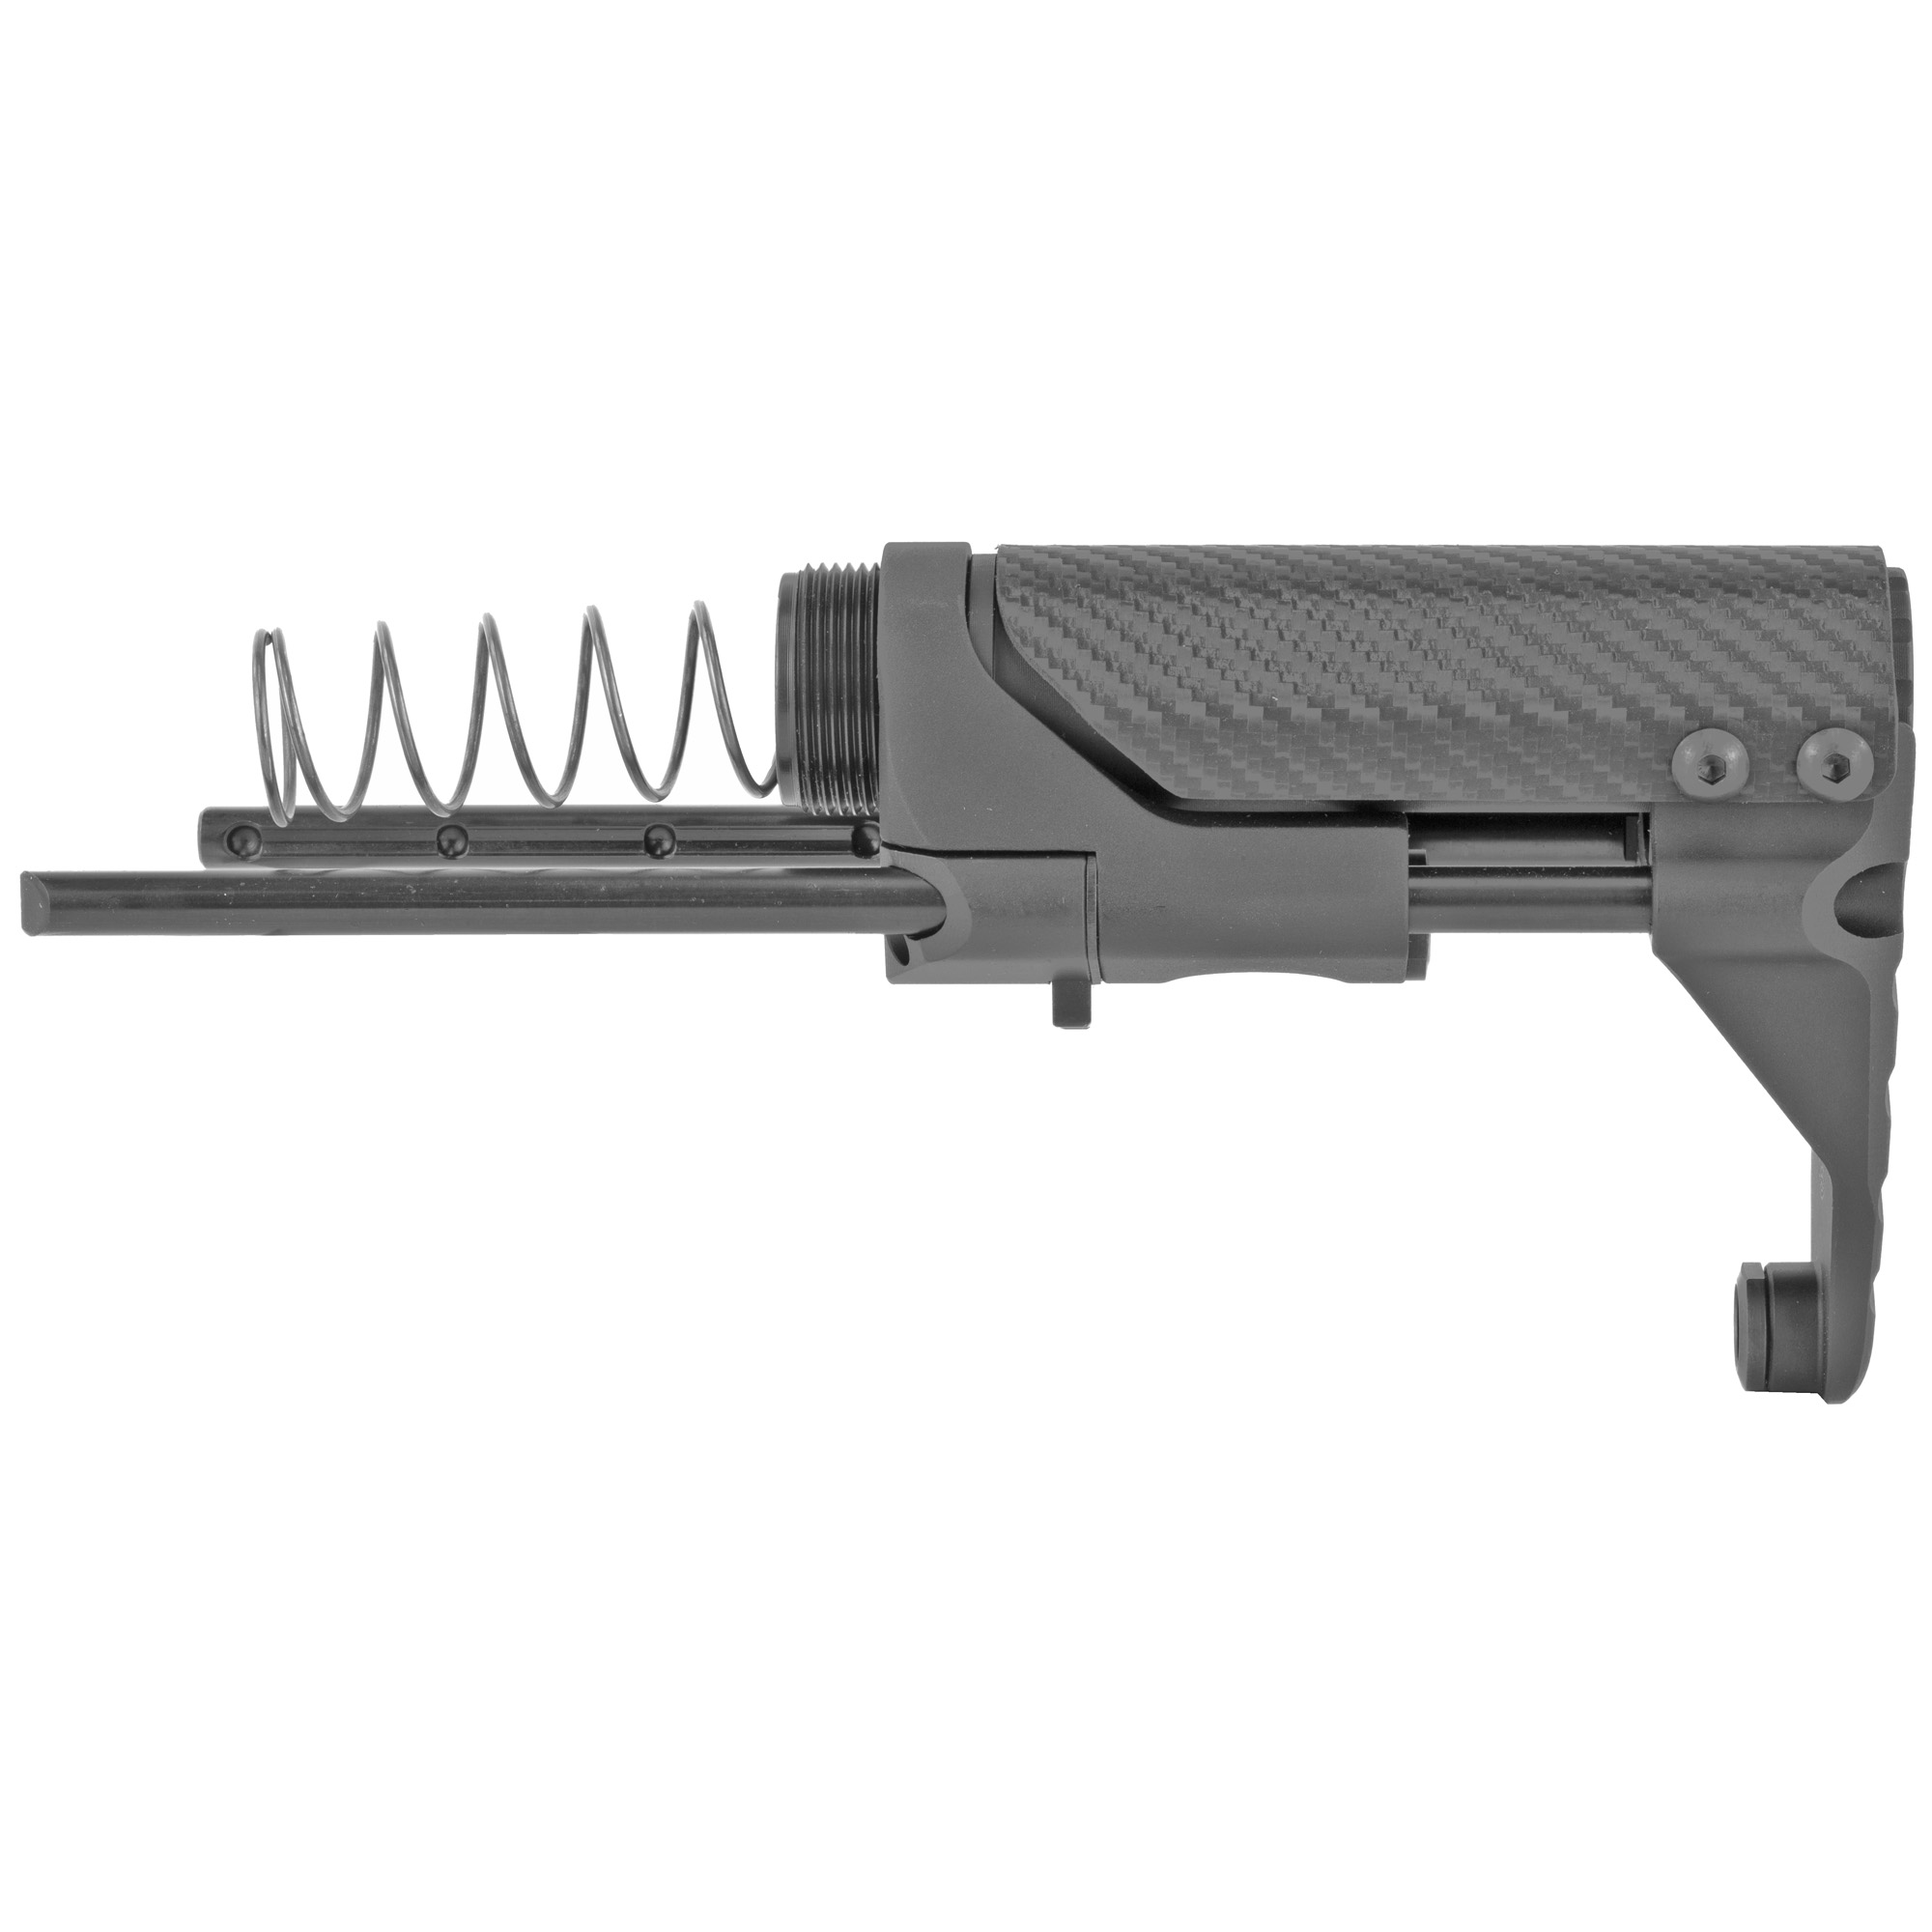 "The Battle Arms Development's Vert Stock System-PDW Stock is M16 BCG compatible with no proprietary bolt carrier group required. It offers a continuous cheek rest for stable shooting"" ultra-compact buffer and buffer spring"" four locking stock positions and two QD sling swivel points. The system is designed for 5.56/.223 direct gas impingement systems and will also work on 300BLK DI systems as well but must have appropriate gas port size. Will not work with solid filled 9mm bolt carrier.The inside"" rear cavity of the bolt carrier must be .625"" in diameter x .625"" deep minimum to clear the buffer. The system should be configured"" installed and function checked by a qualified gunsmith for reliable and safe operation."